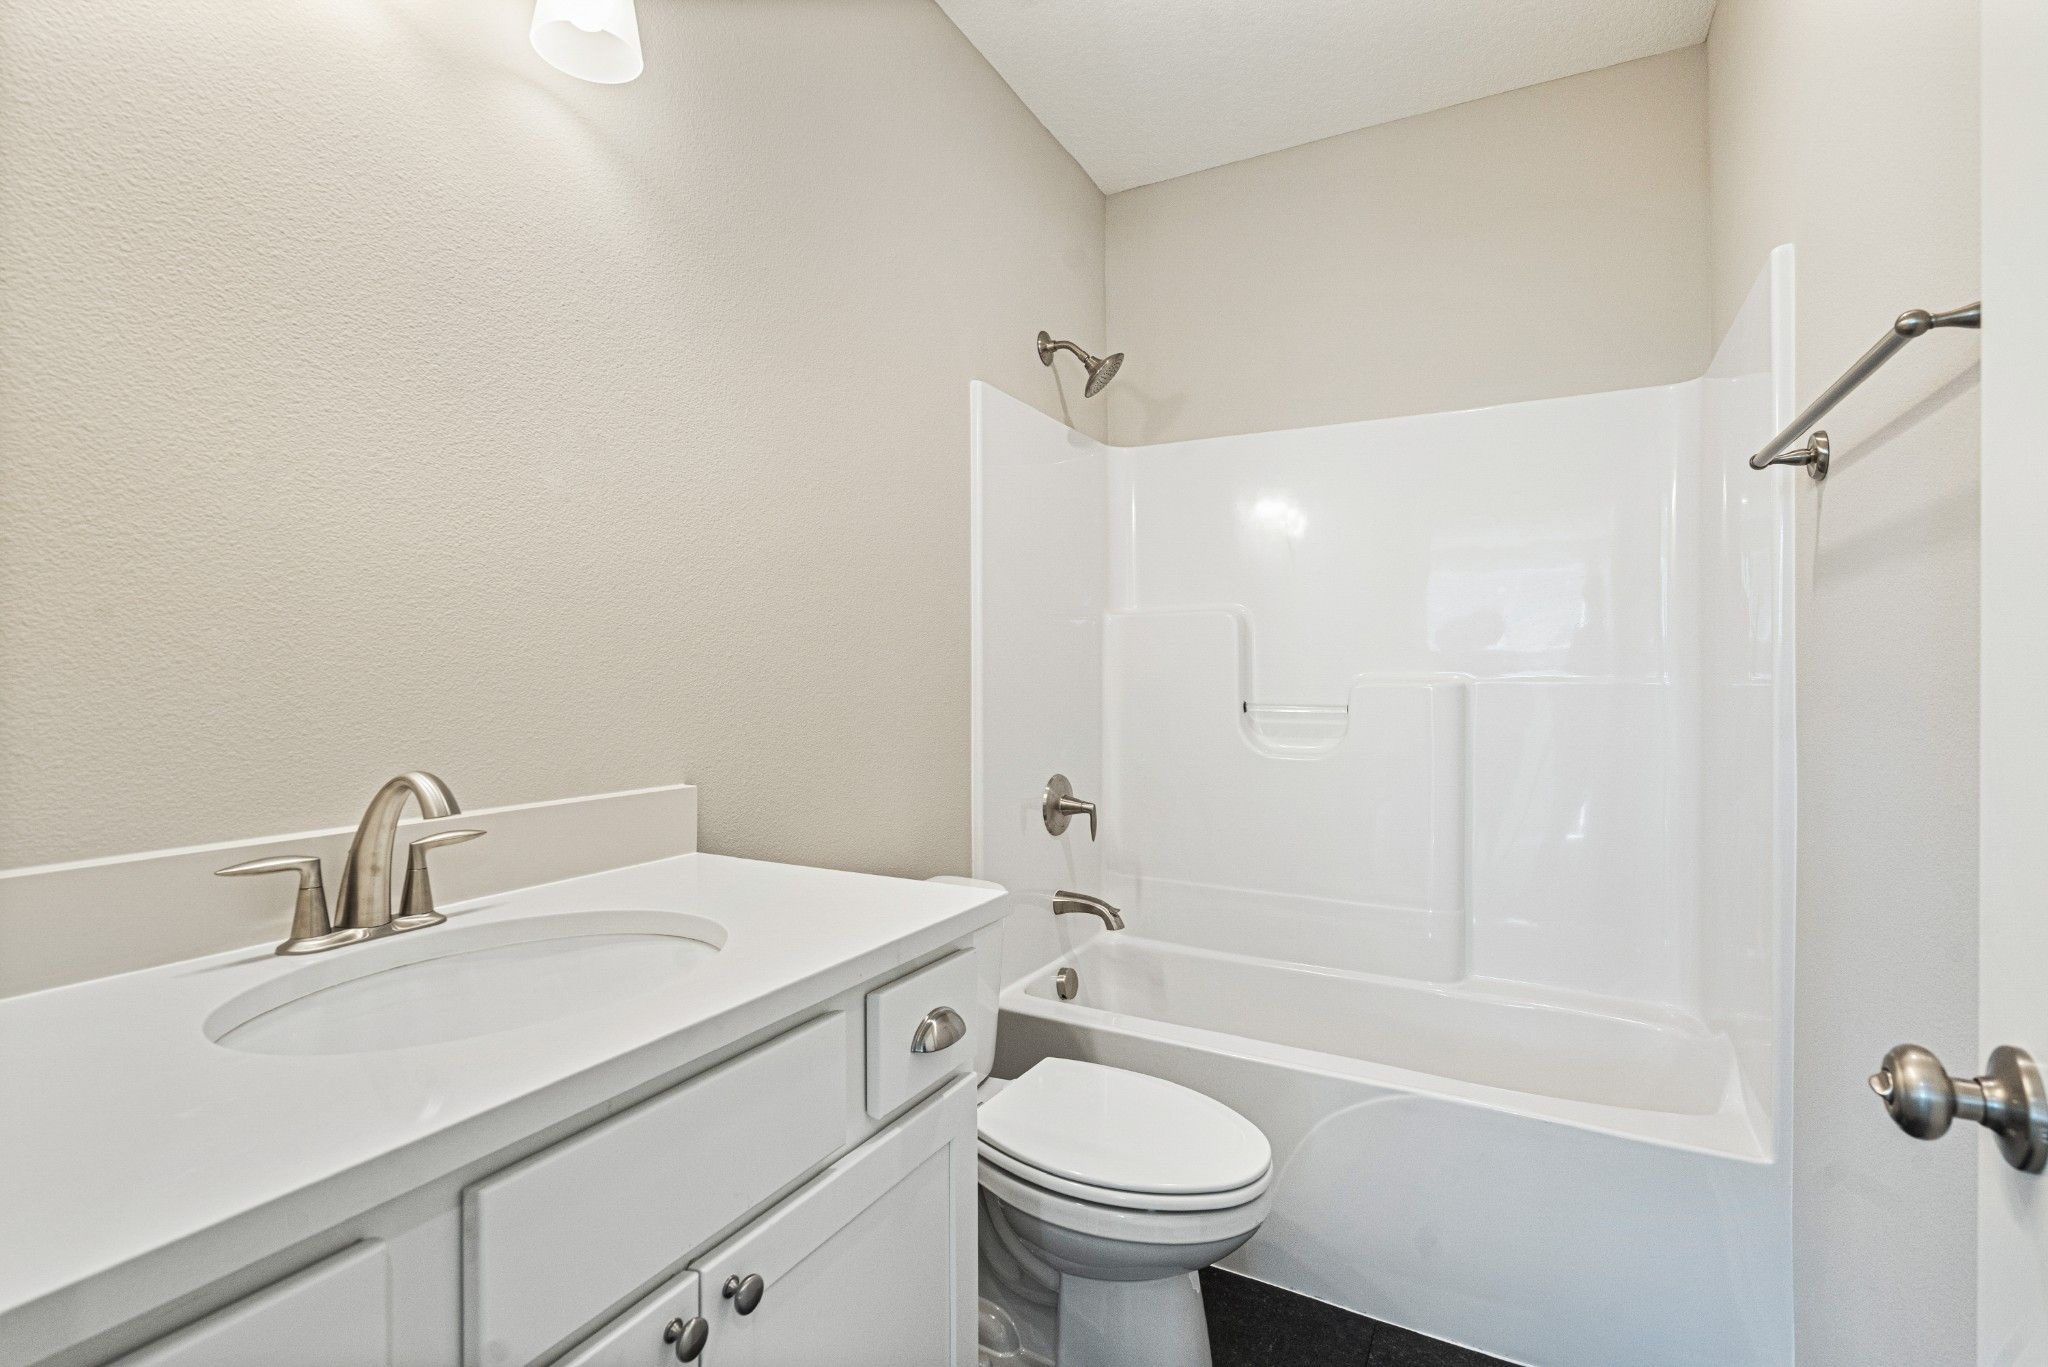 Bathroom featured in the Charlotte - IA By Summit Homes in Des Moines, IA